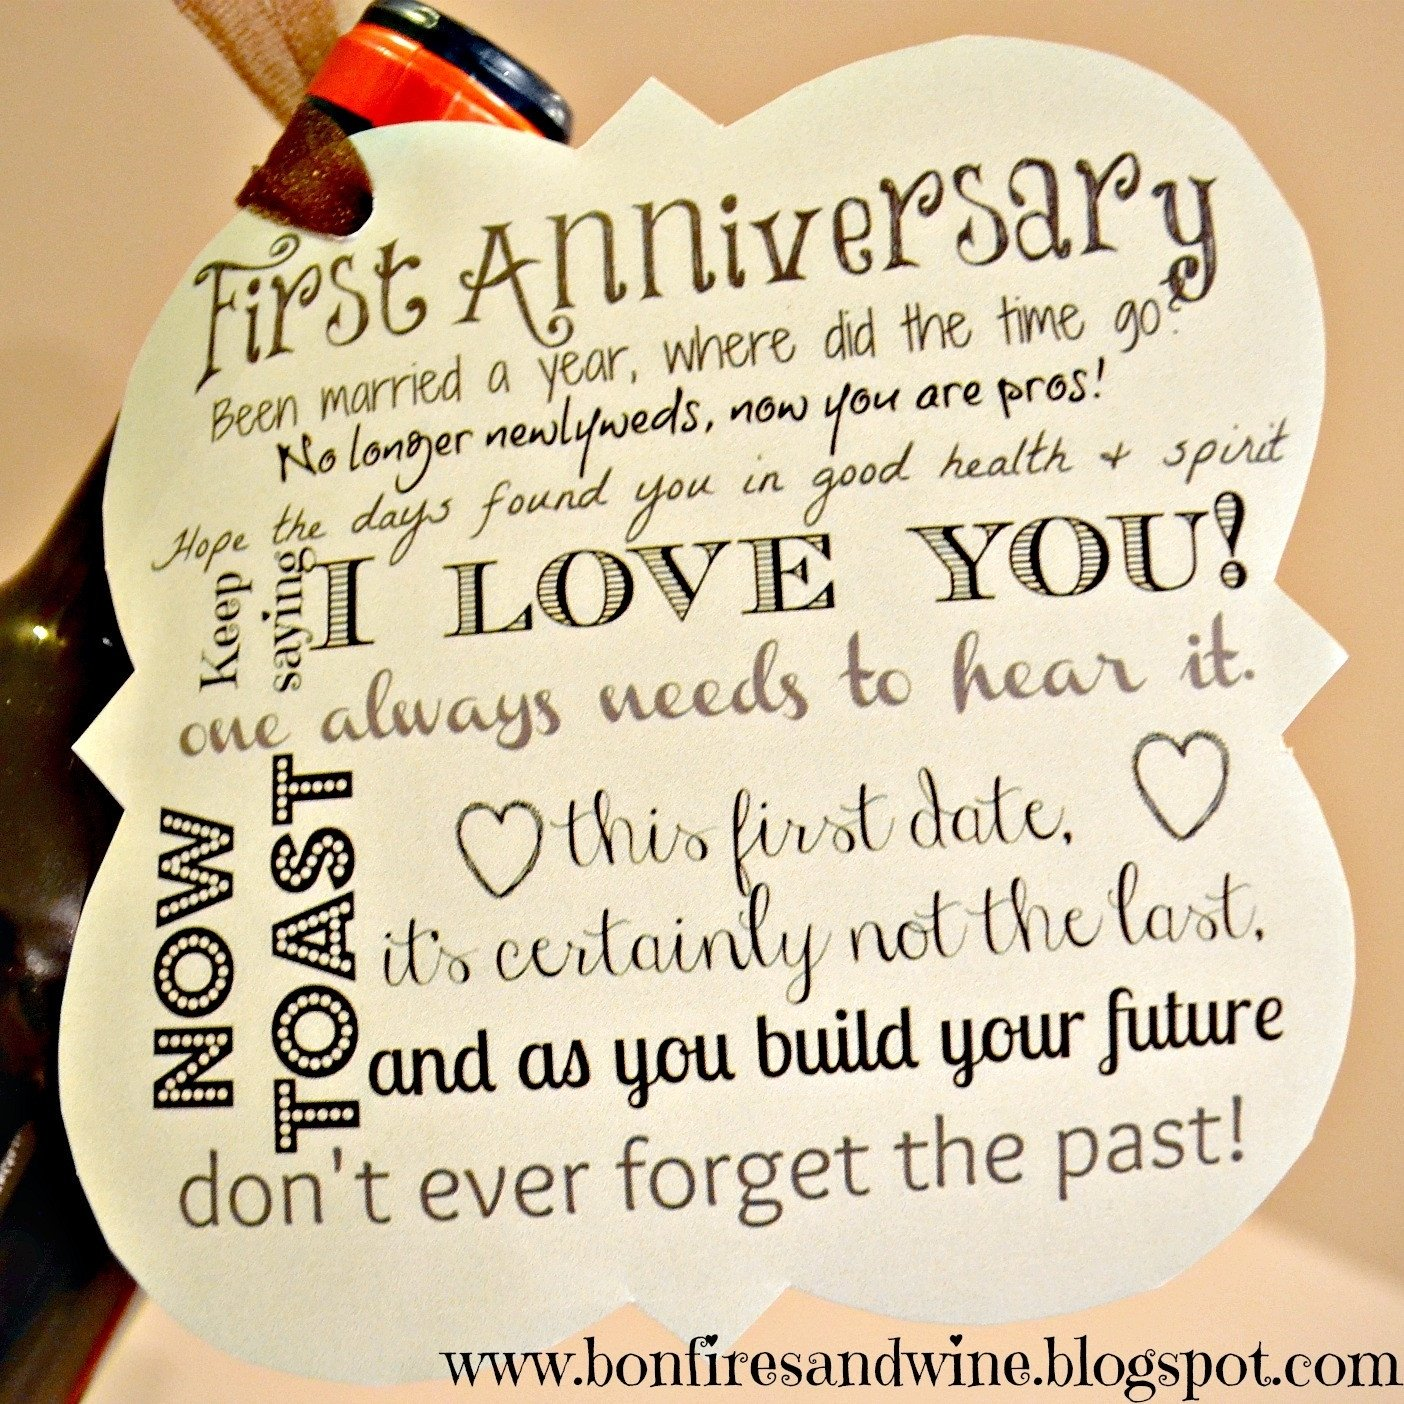 10 Fashionable One Year Anniversary Date Ideas stunning one year wedding anniversary gifts for husband gallery